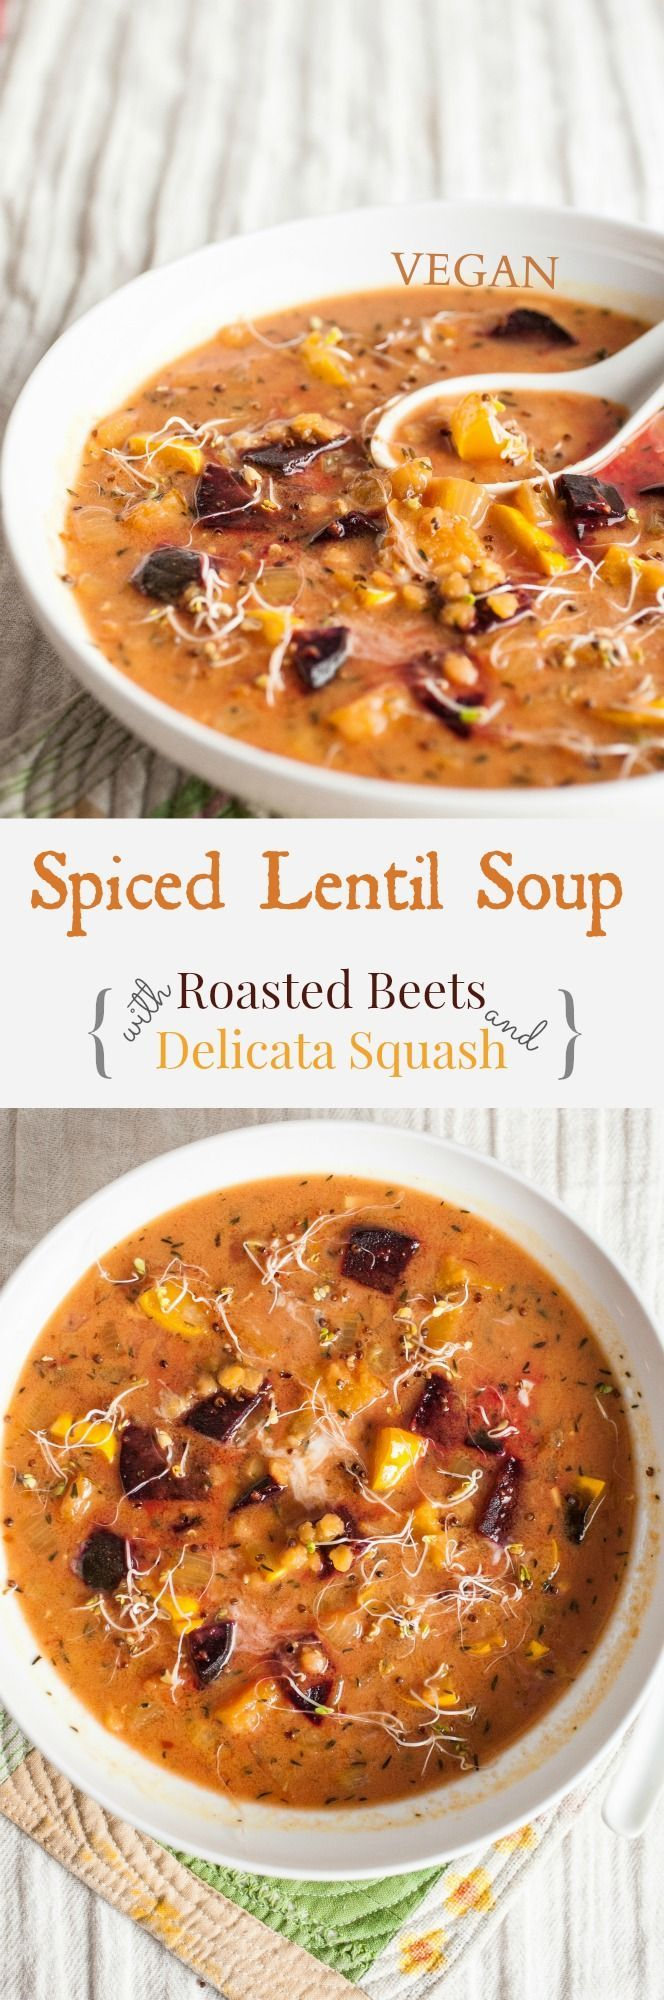 Produce On Parade - Spiced Lentil Soup with Roasted Squash & Delicata Squash - This is one of my favorite soups. Based with creamy coconut milk, red lentils mingle with roasted beets and caramelized delicata squash. Spiced with tantalizing aromatics like cardamom, cinnamon, and nutmeg.